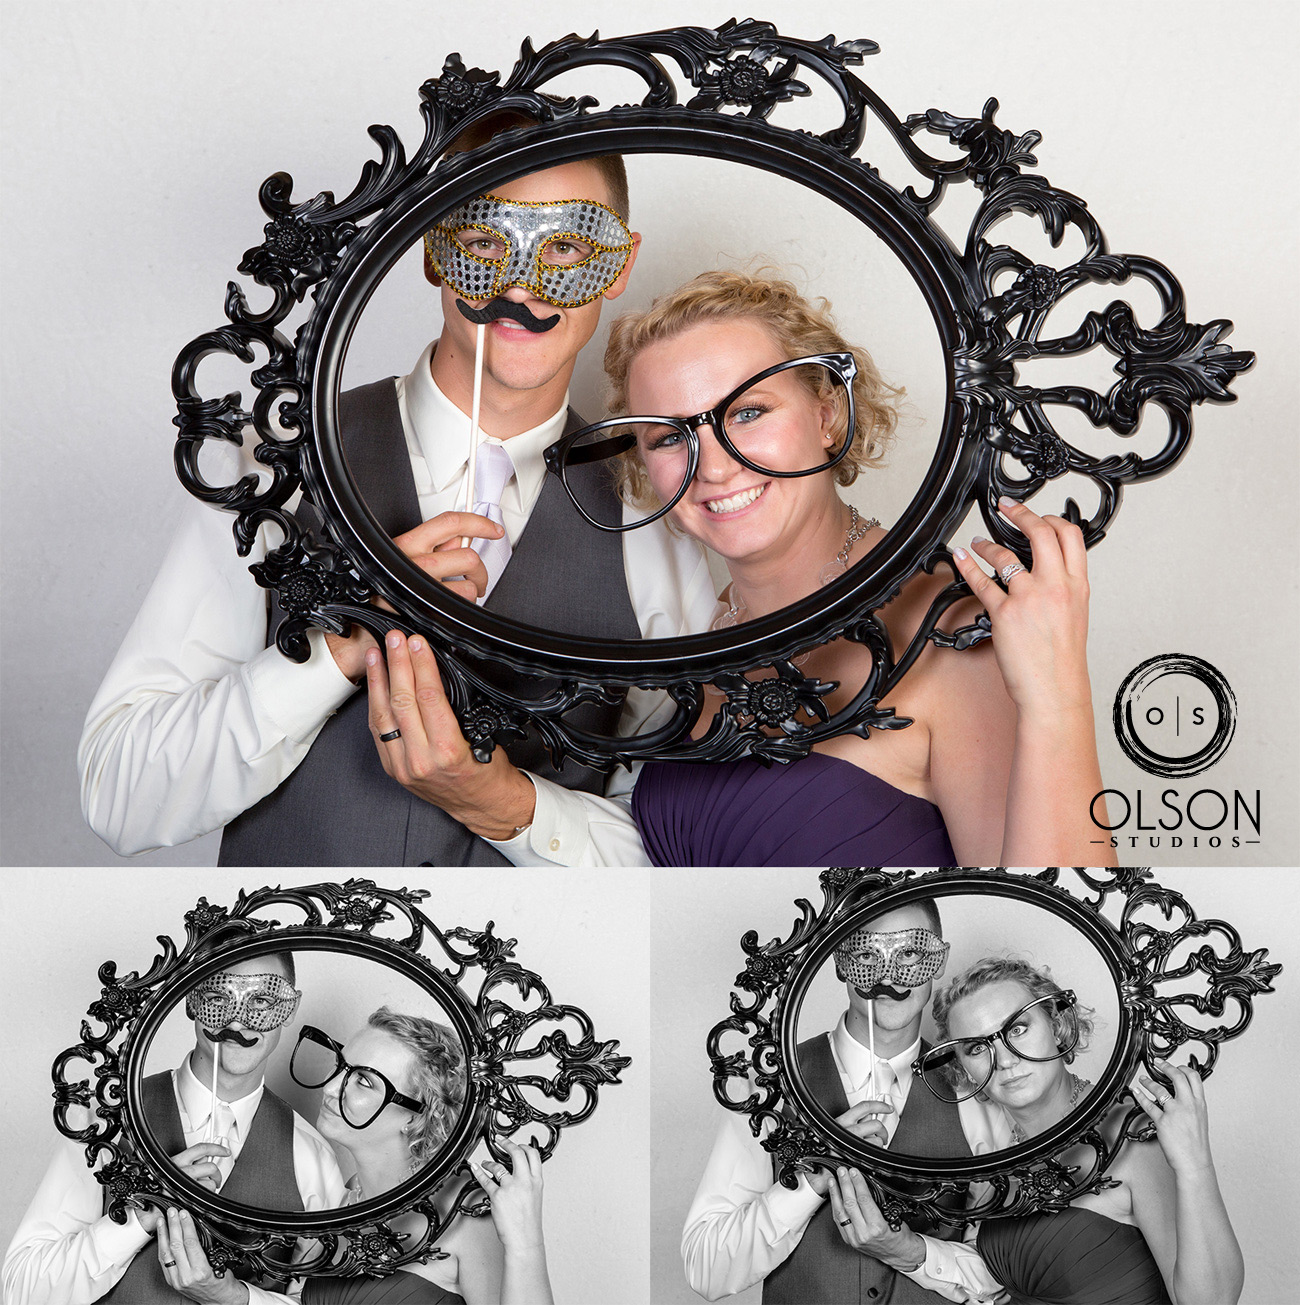 Matthew-and-Victoria-Photo-Booth-(3)